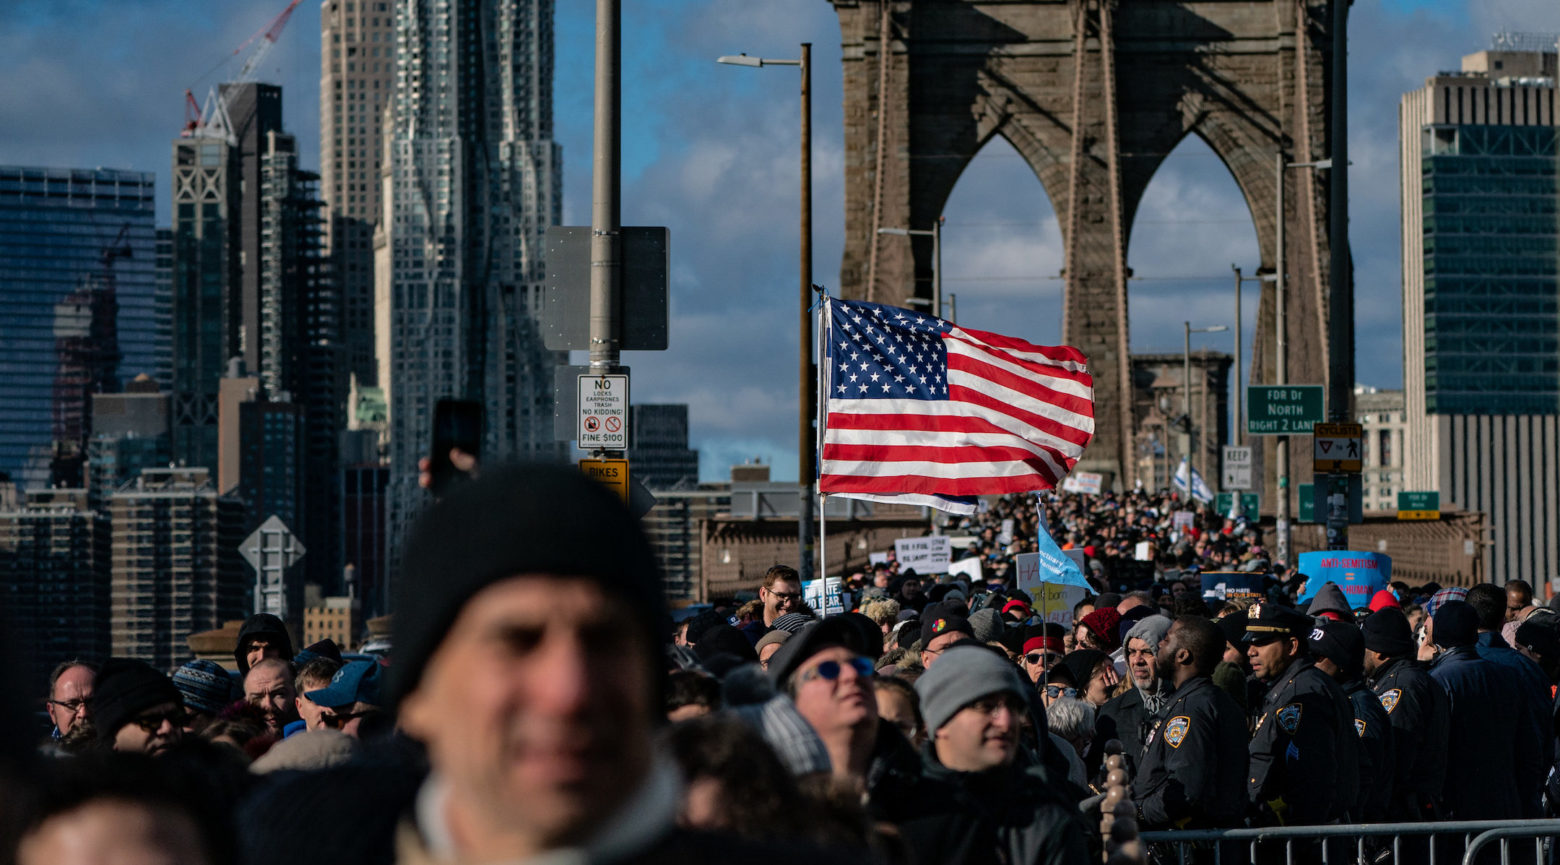 Jewish Solidarity March Held In Response To Rise In Anti-Semitism